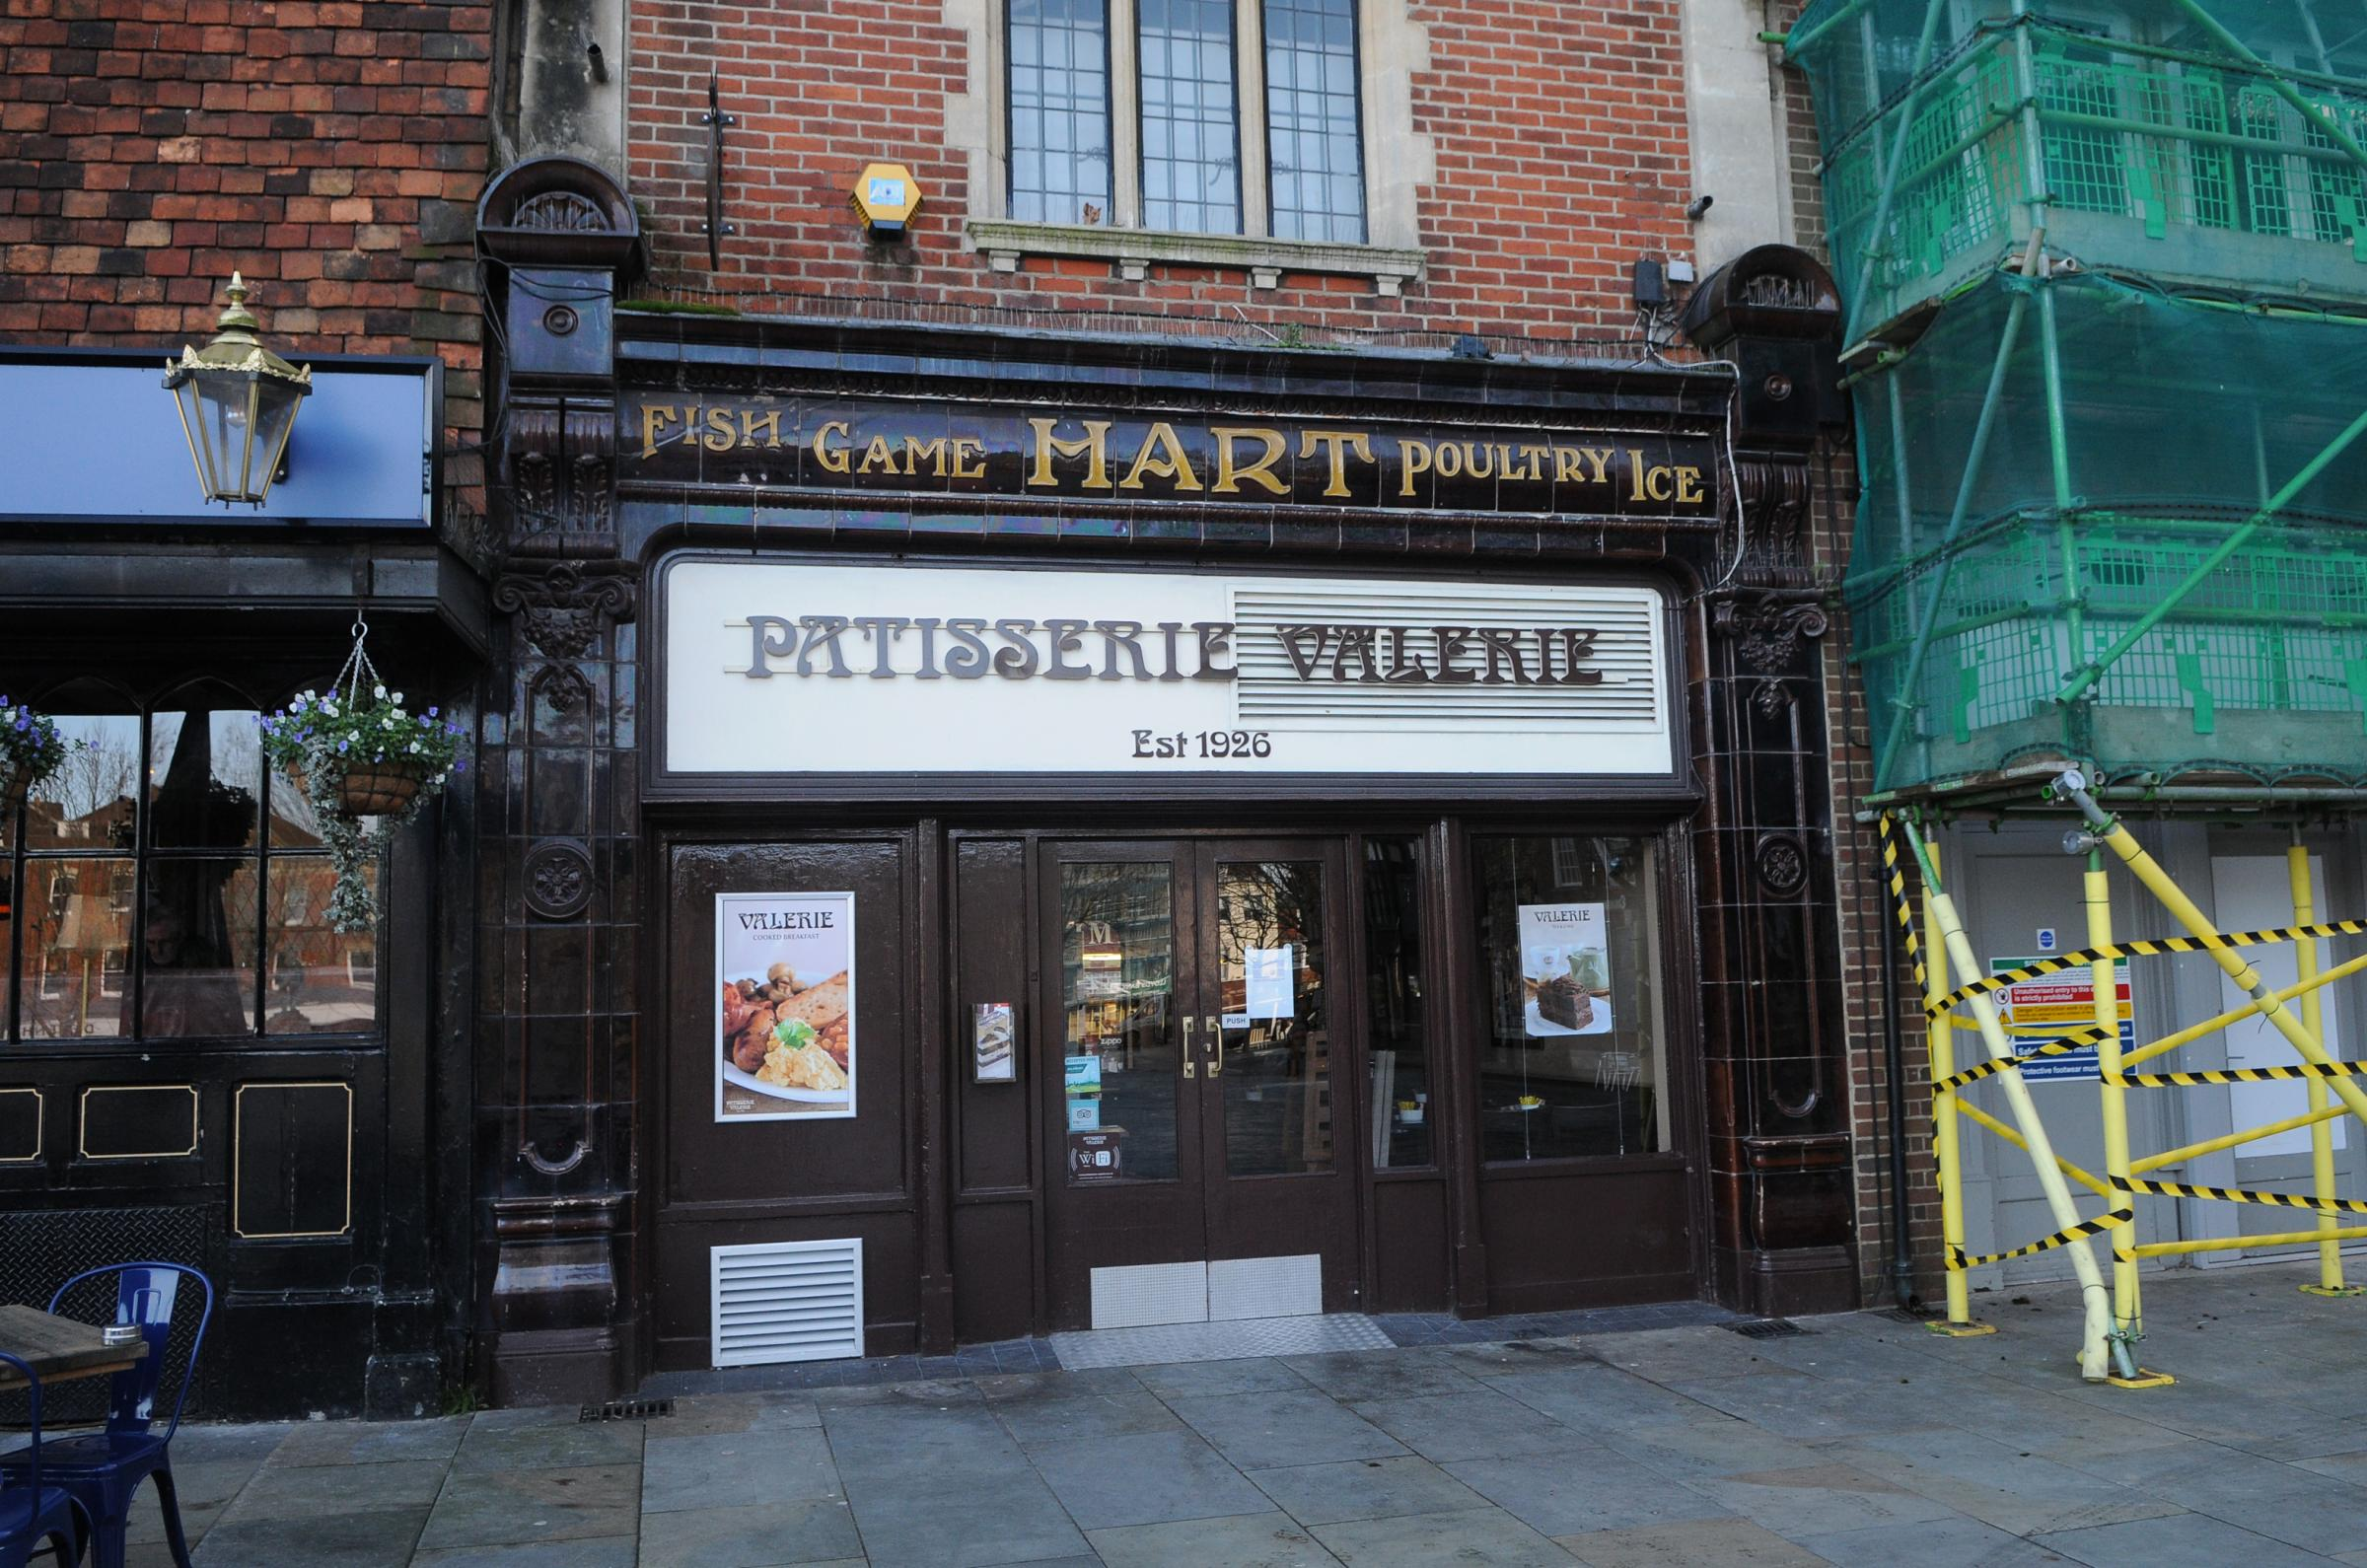 Patisserie Valerie in Salisbury has closed